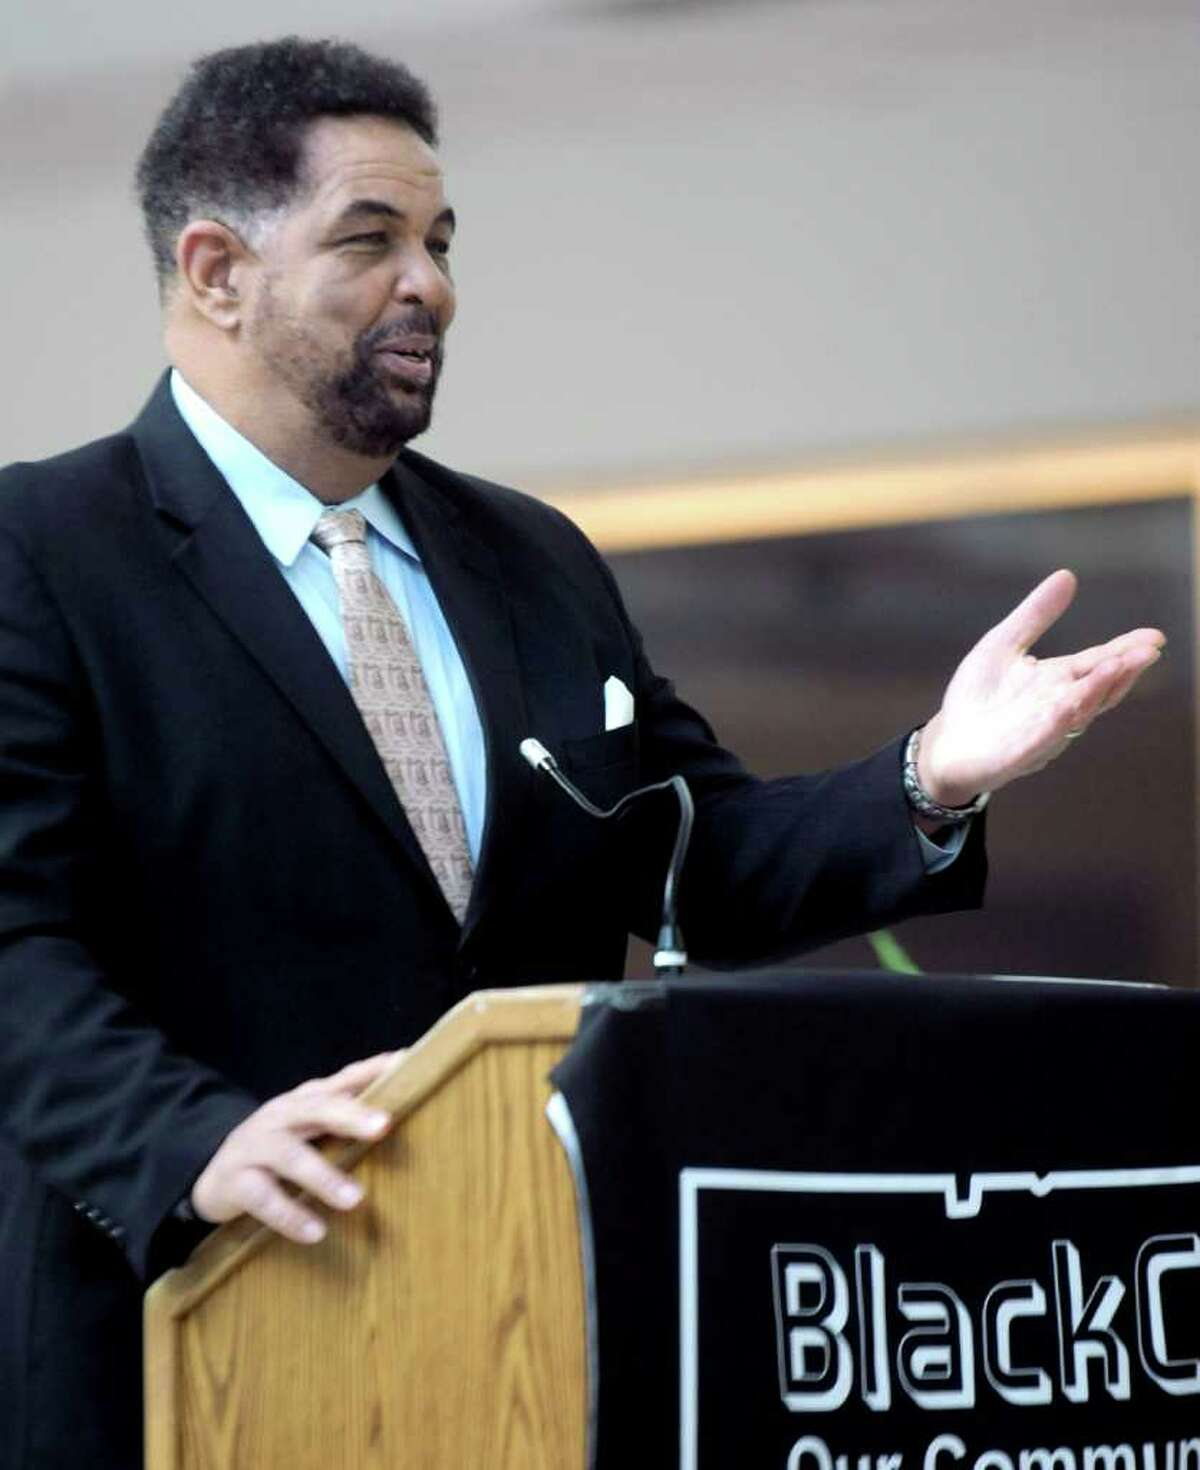 Former Stamford High School Principal and Founder of Rites of Passage Rodney Bass speaks after being presented the Stamford ICON Award during the 2012 MLK All about Education Day at the University of Connecticut's Stamford campus on Saturday, January 14, 2012.